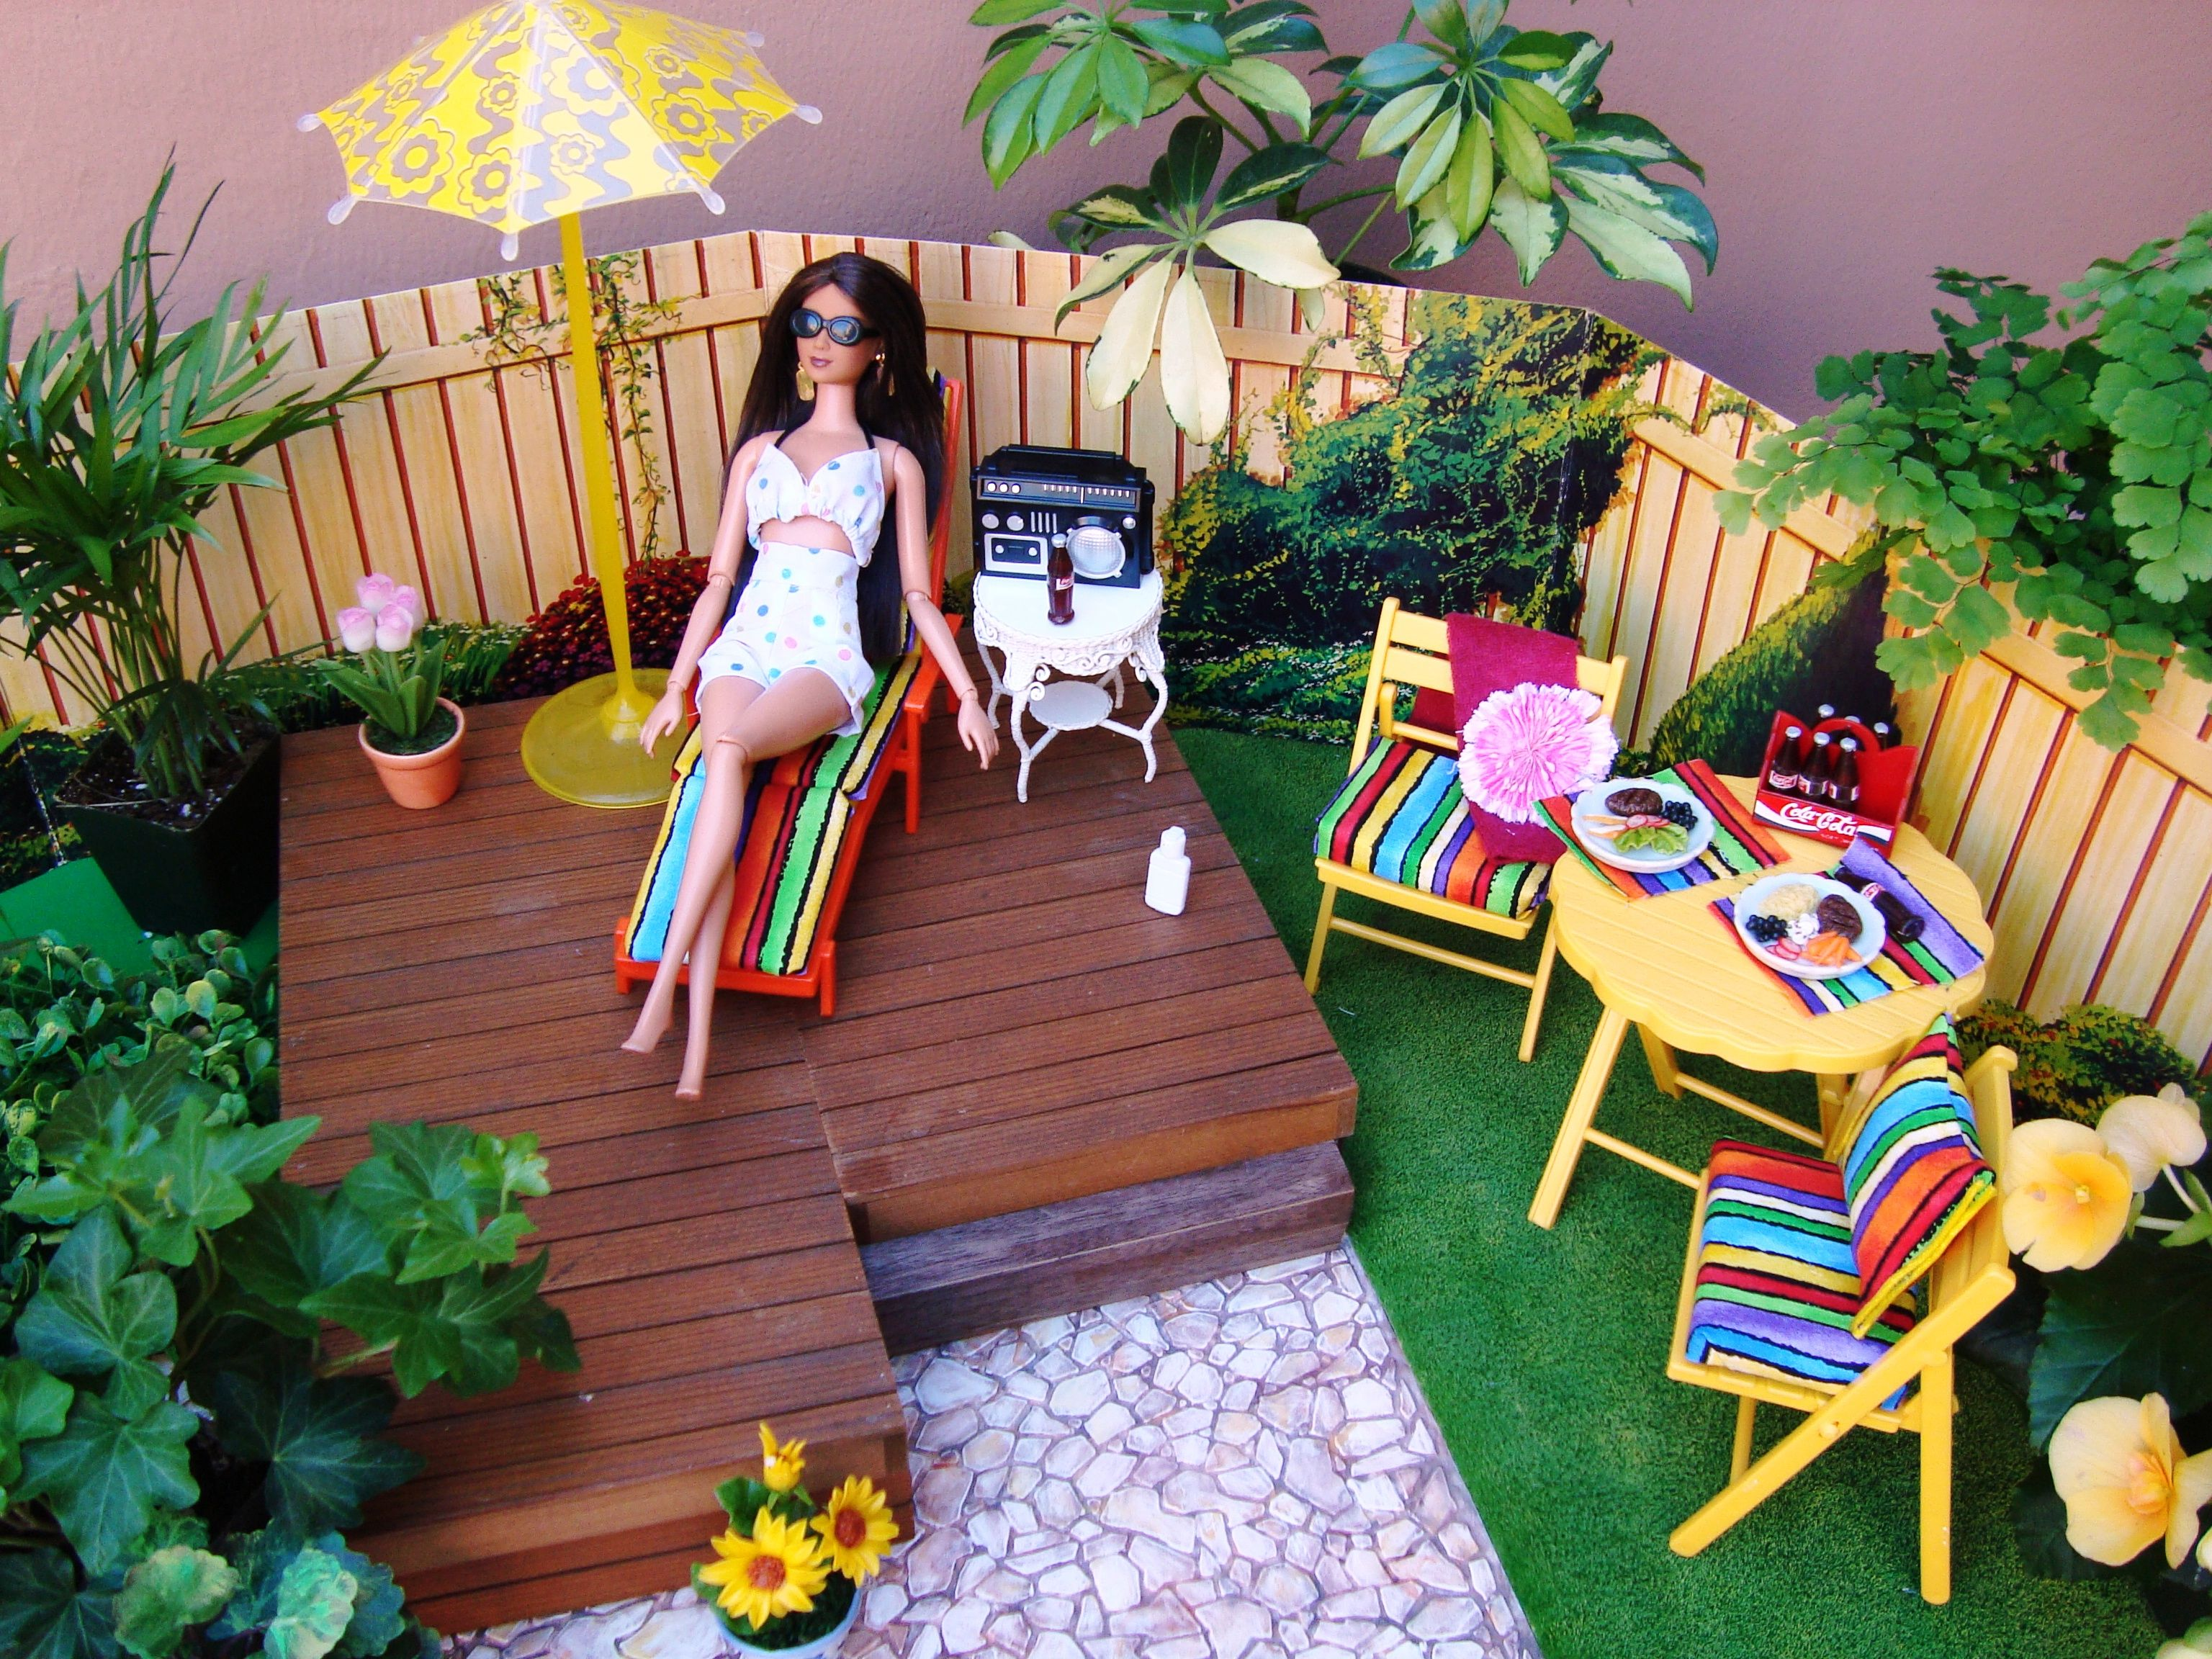 Barbie Chillin In Her Backyard  Photo By Debby Emerson